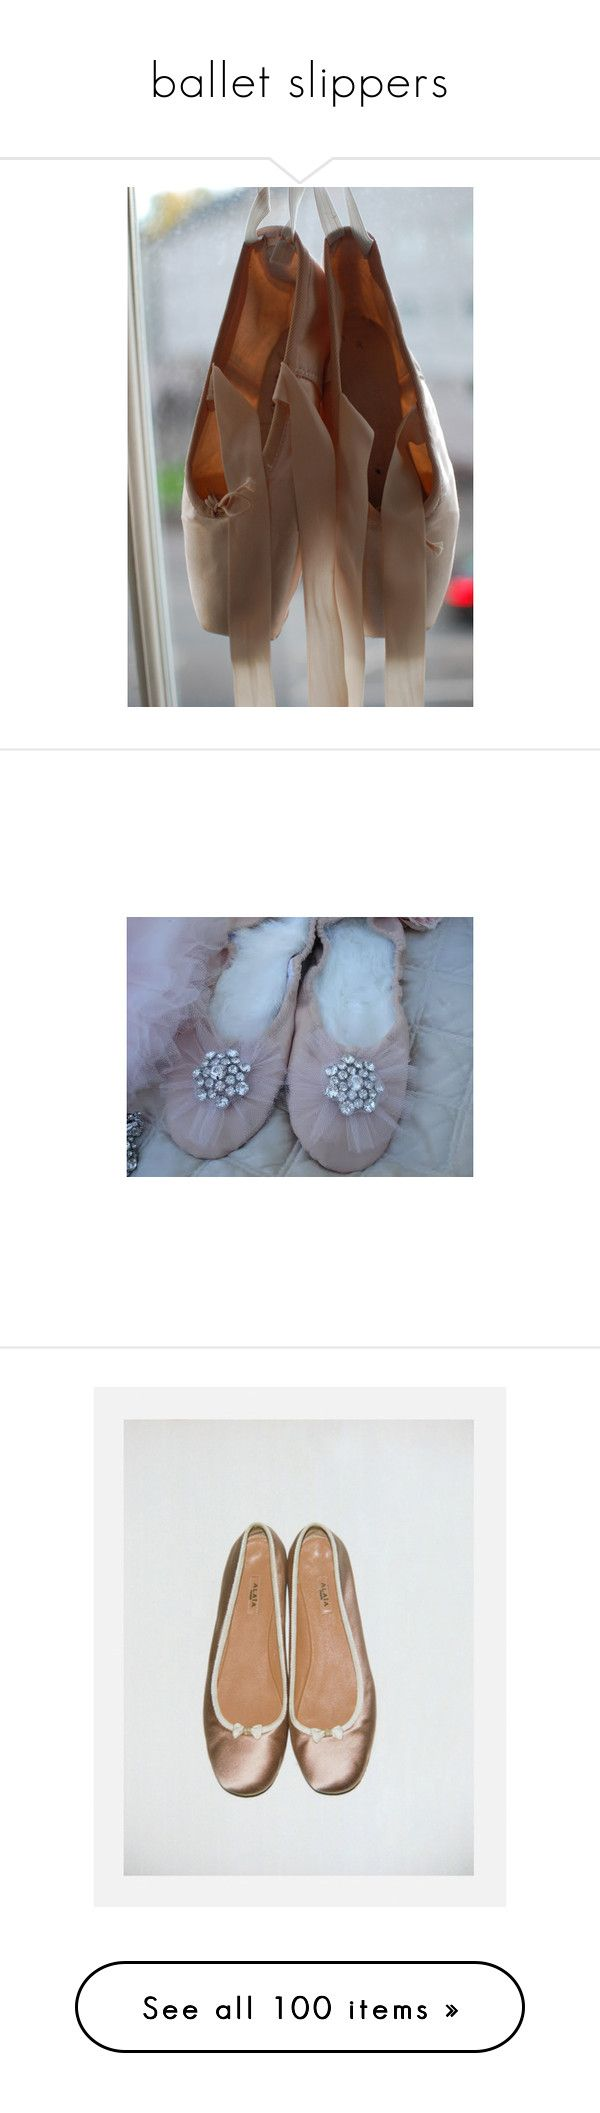 """""""ballet slippers"""" by lerato ❤ liked on Polyvore featuring shoes, flats, ballet, ballerina flat shoes, skimmer flats, skimmers shoes, ballet flats, ballet shoes, pink satin shoes and ballerina pumps"""